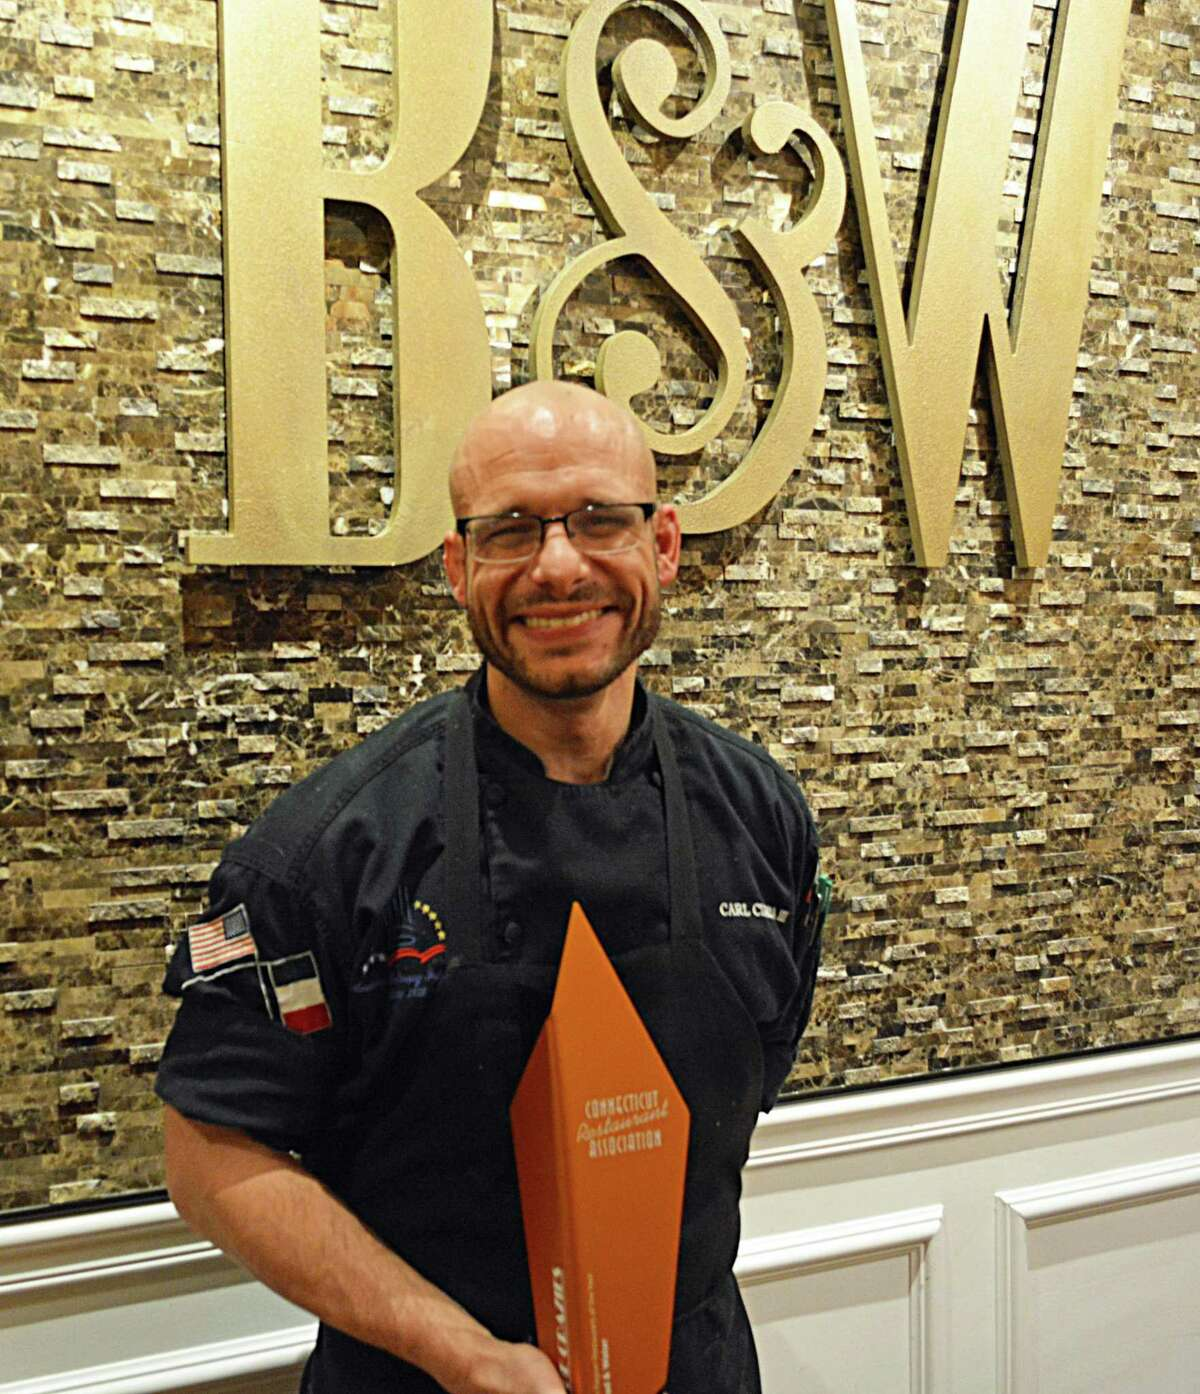 Carl Ciarcia Jr., chef/owner of Middletown's Bread & Water restaurant on Warwick Street, won the Connecticut Restaurant Association's South Region Restaurant of the Year last month.